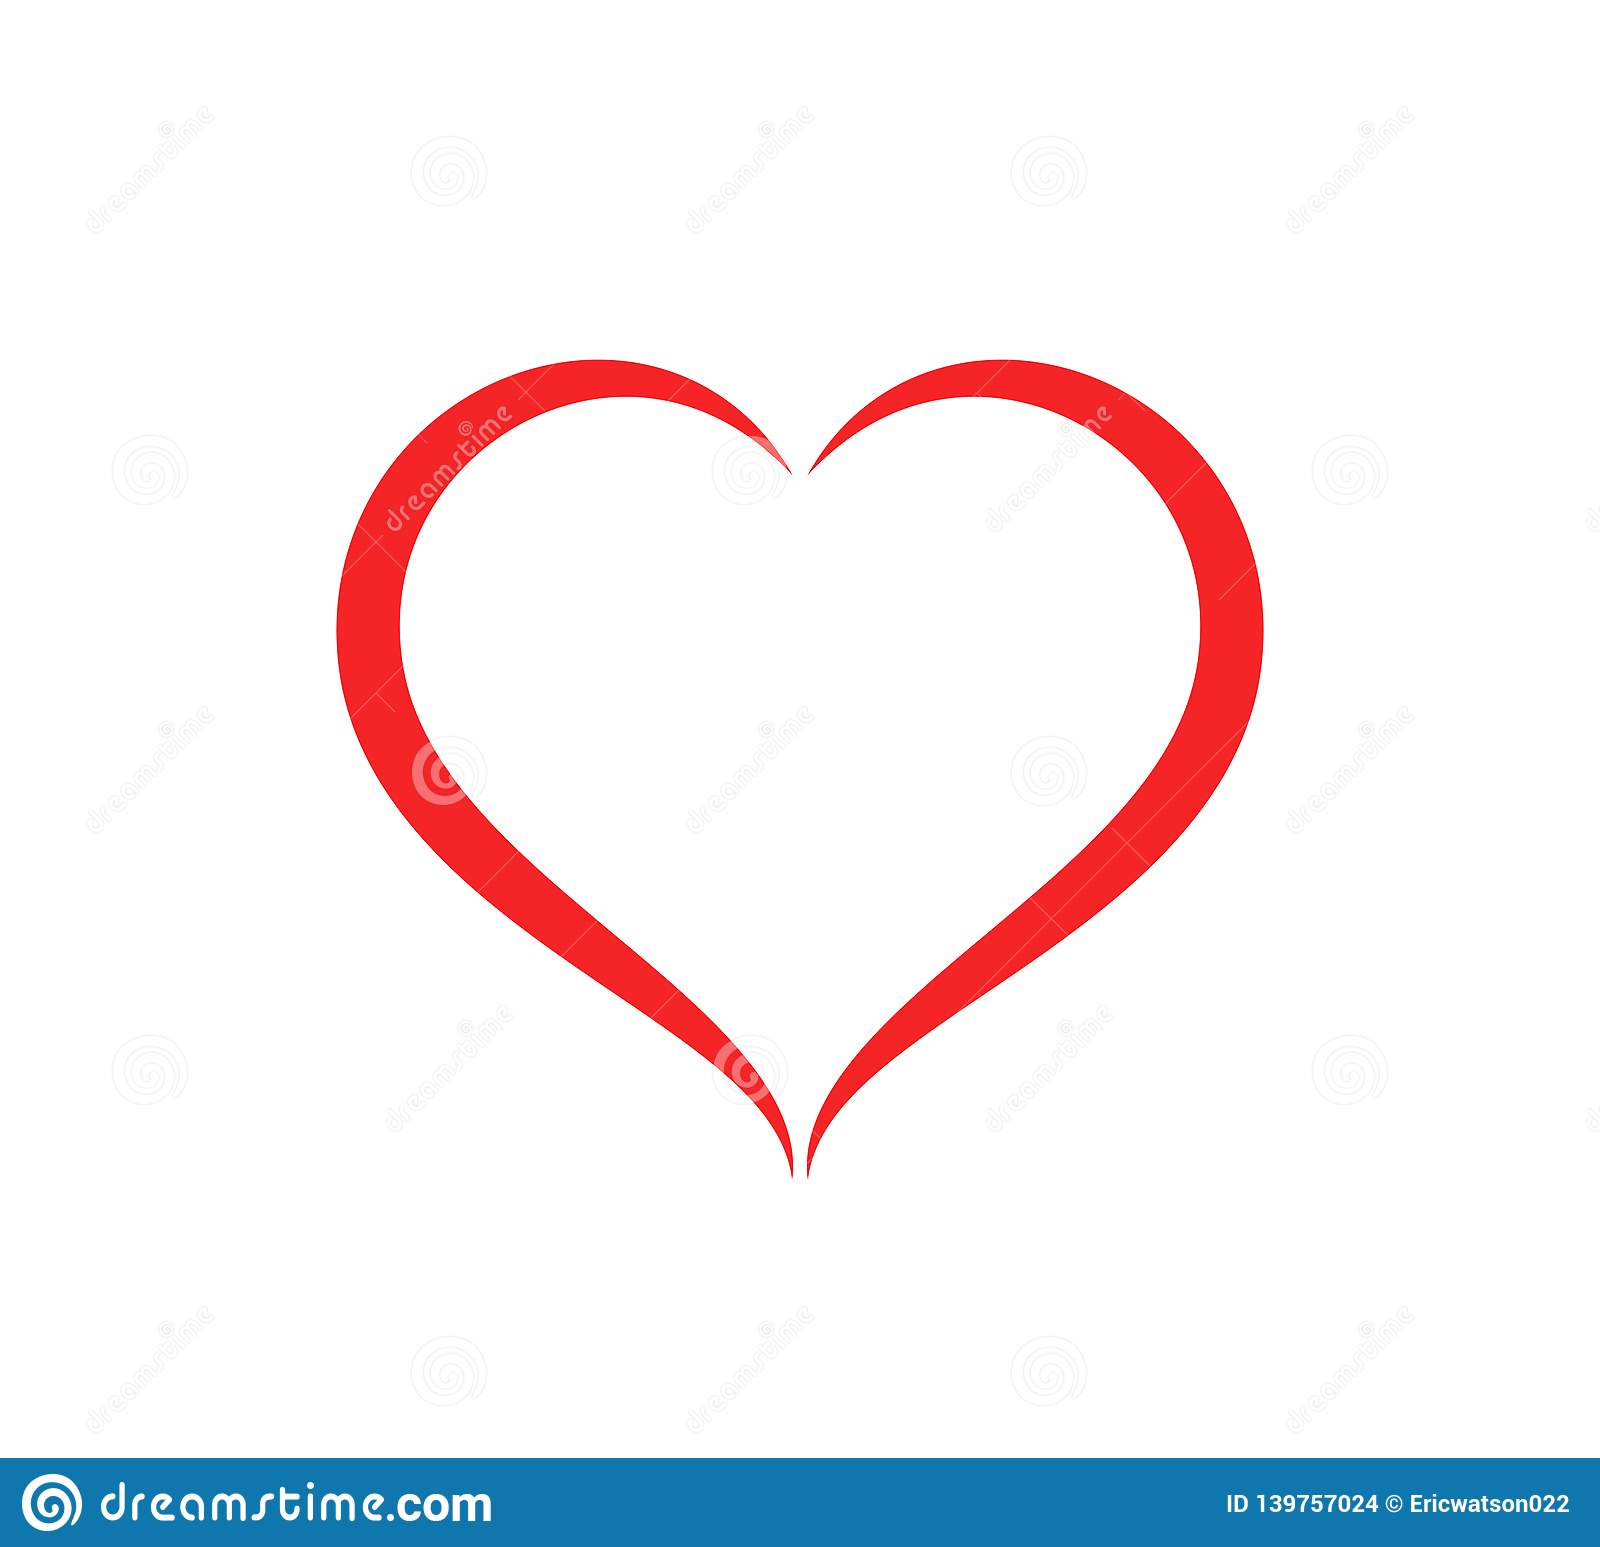 Abstract heart shape outline care Vector illustration. Red heart icon in flat style.